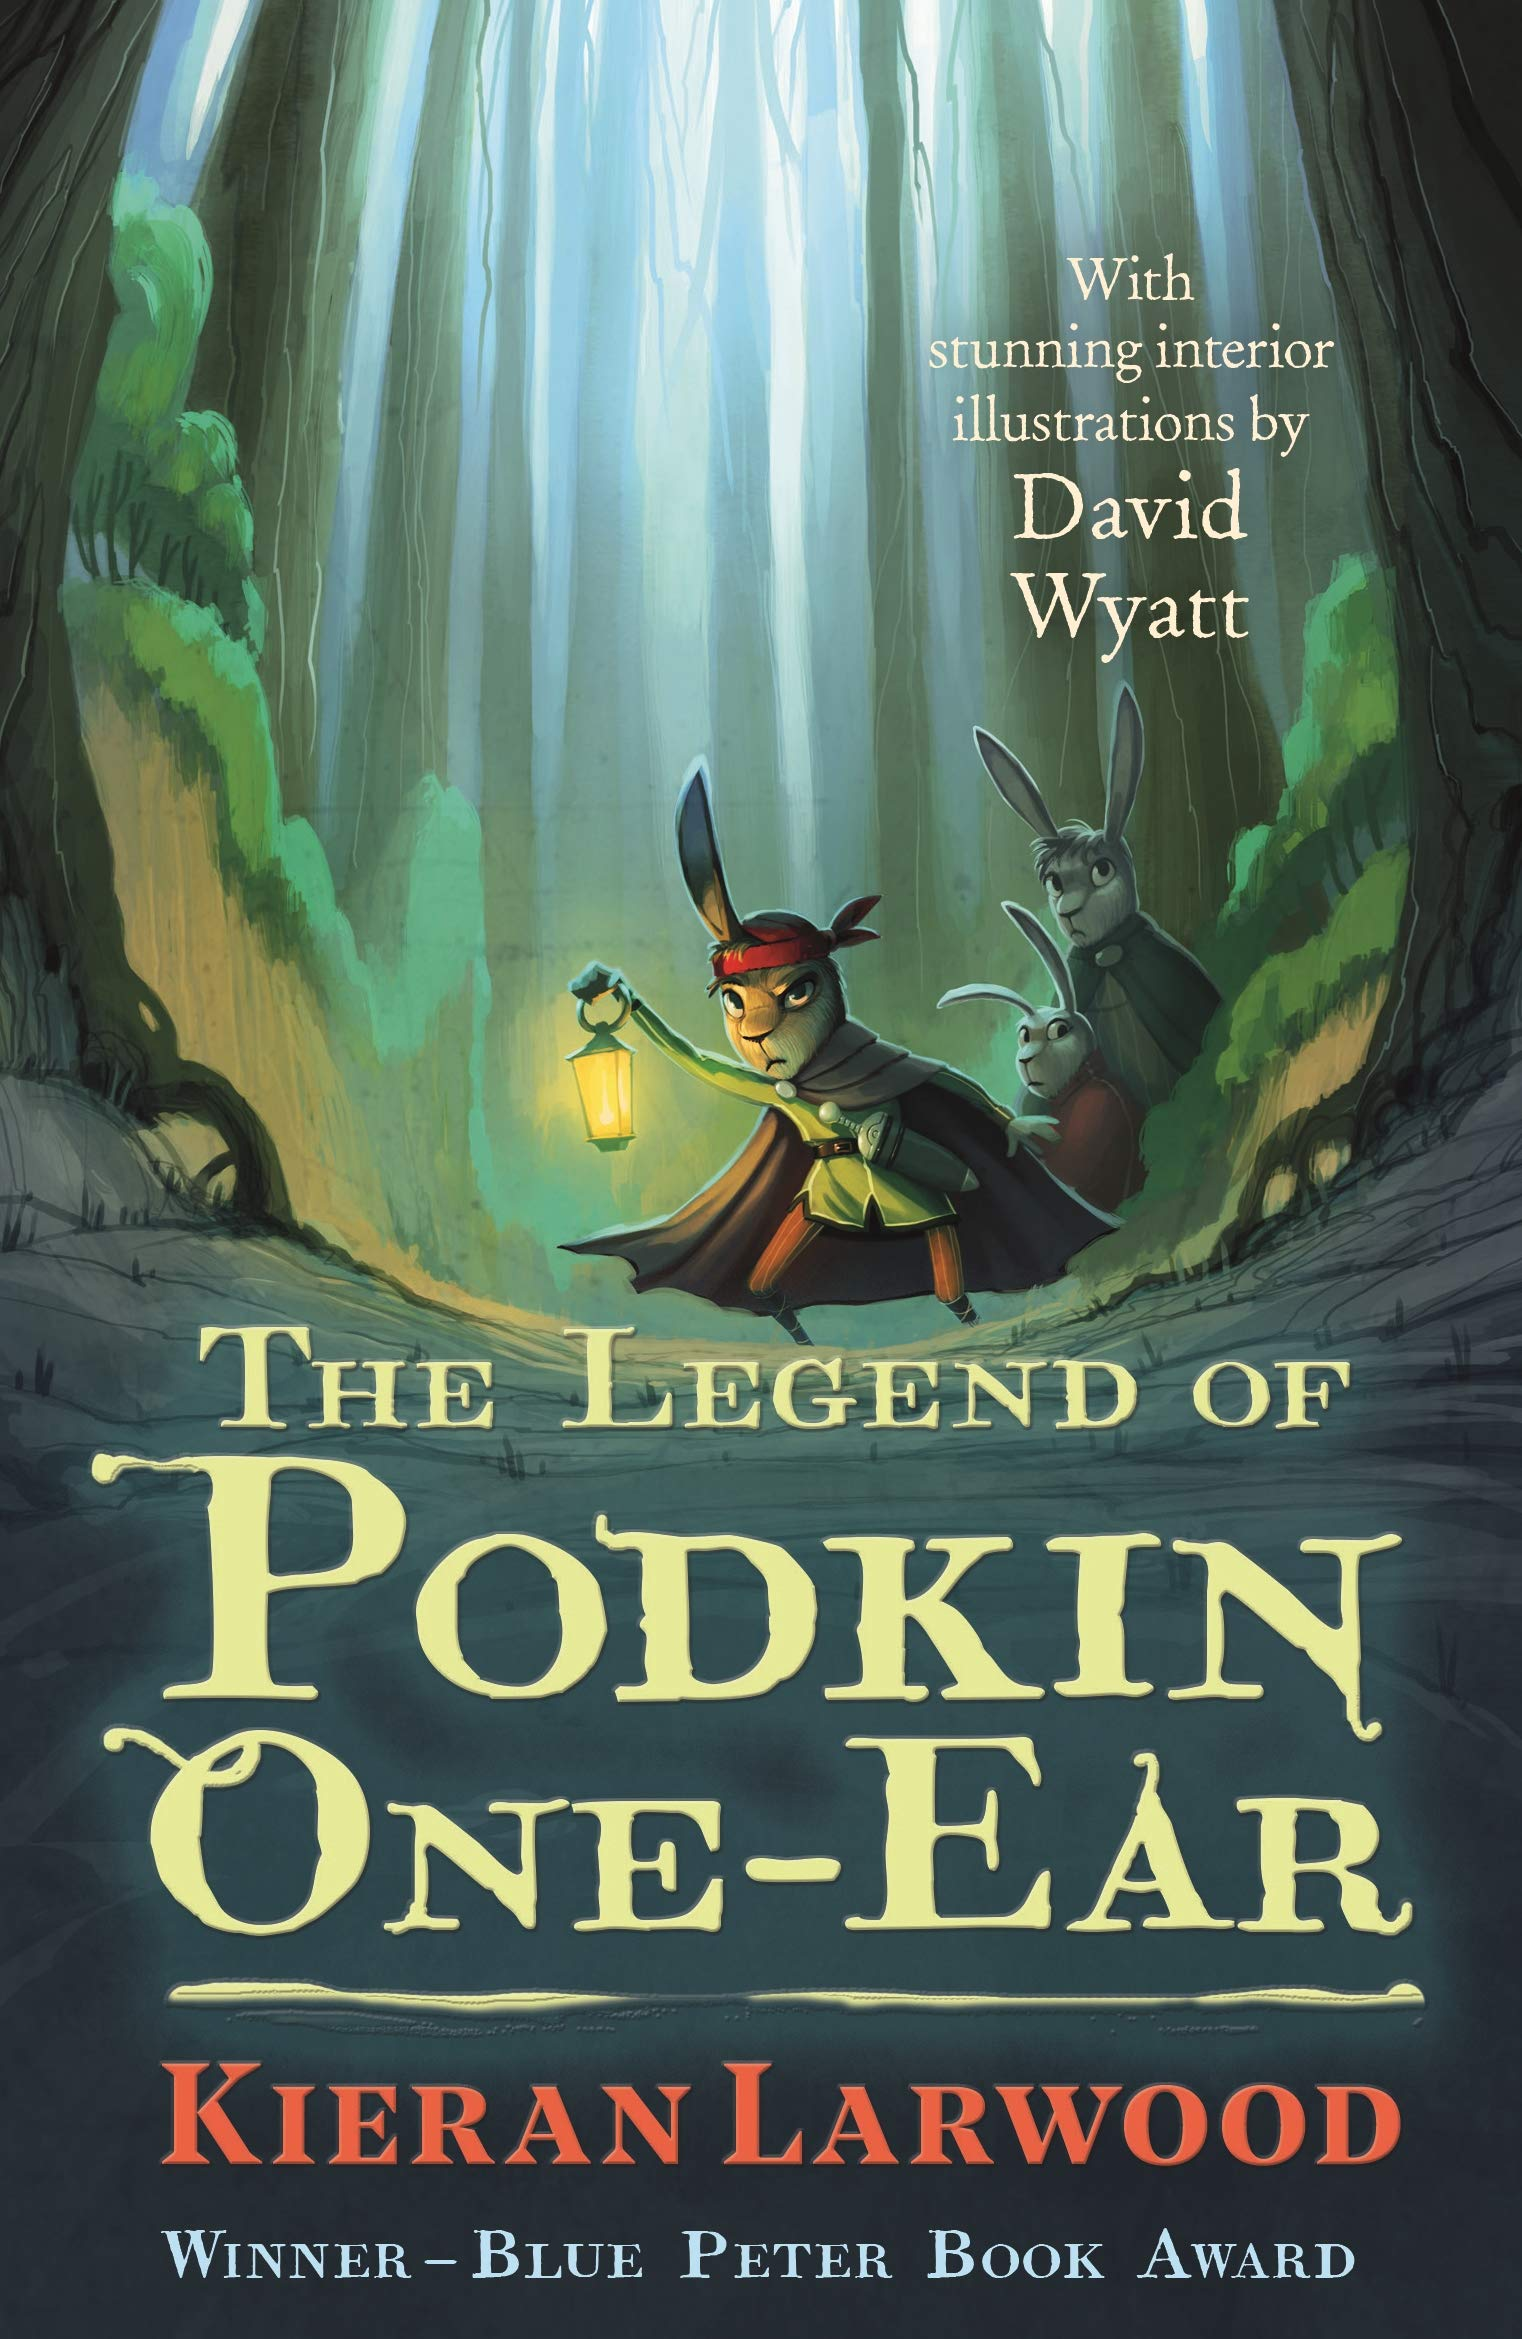 Image result for the legend of podkin one ear